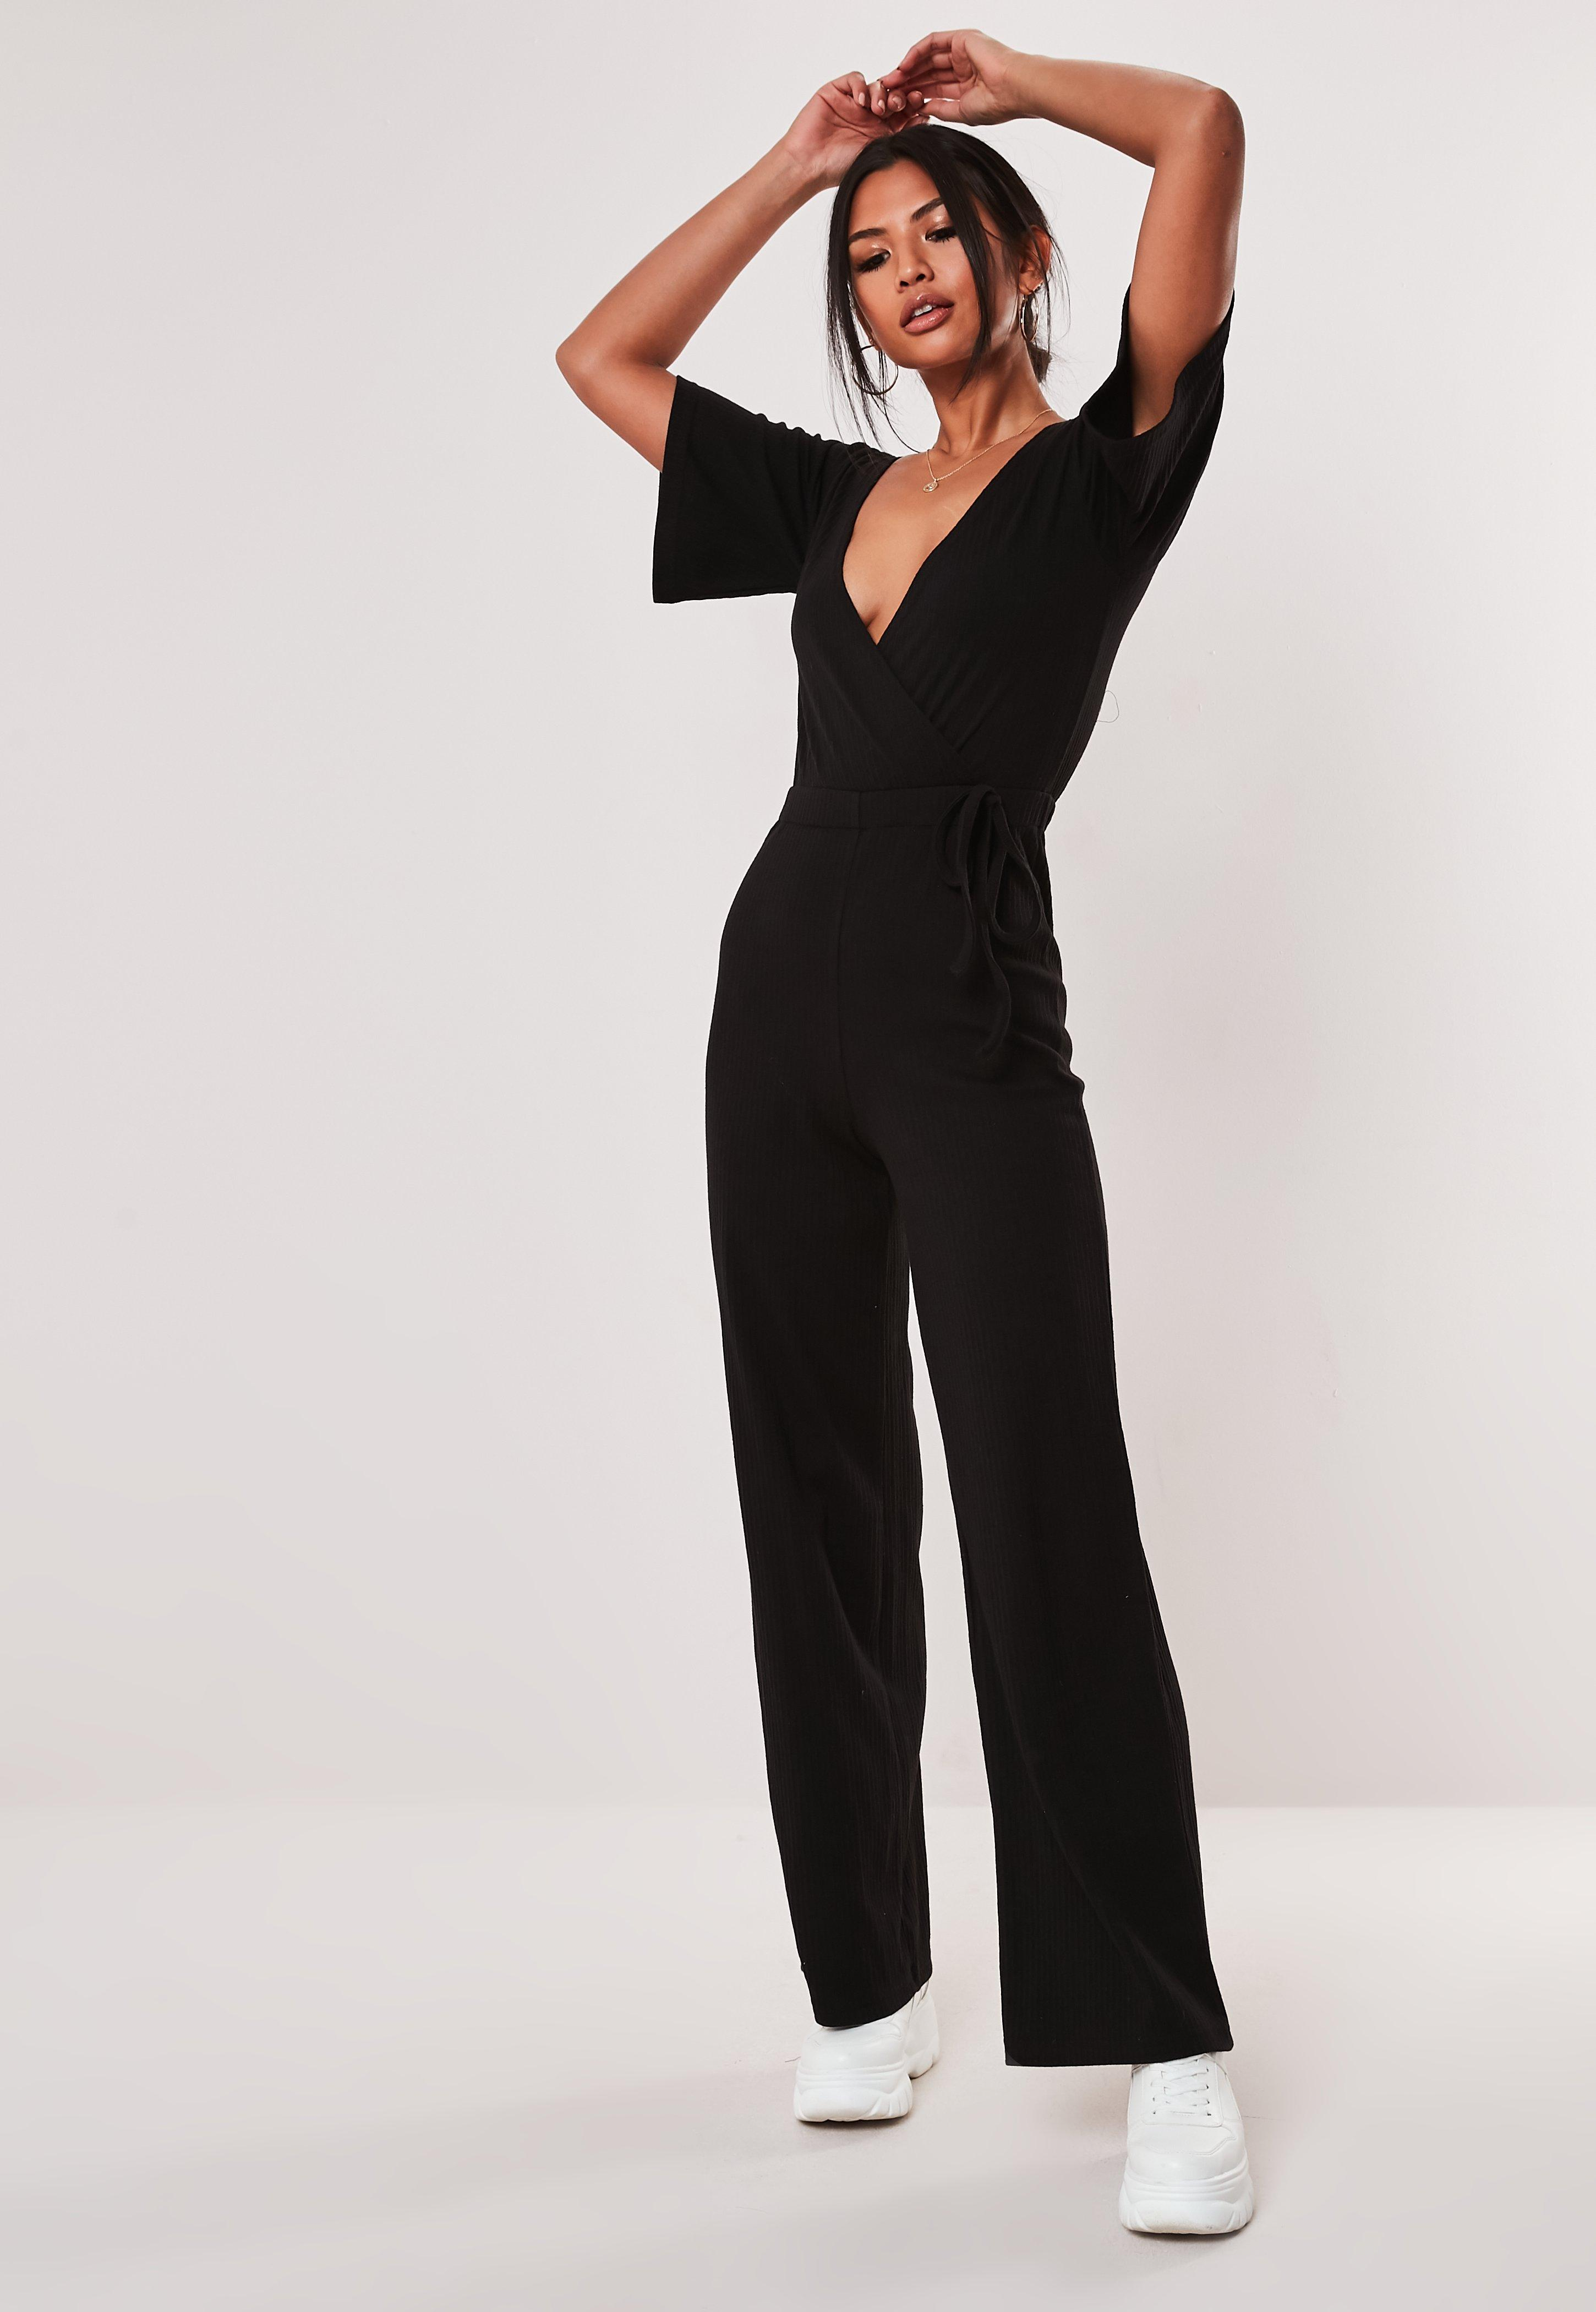 288071bfc877 Dressy Jumpsuits - Evening Jumpsuits | Missguided